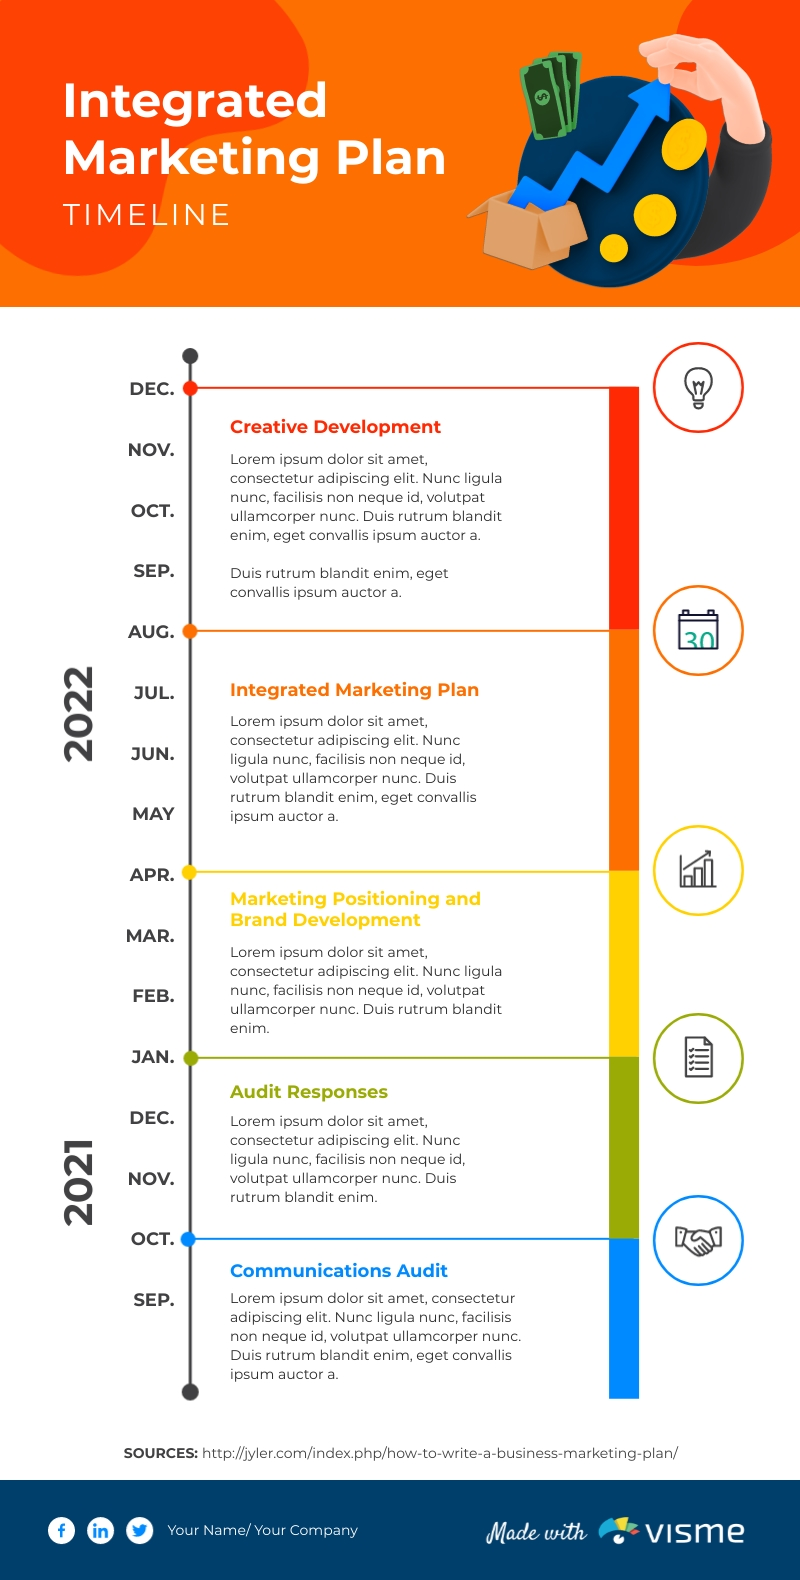 Integrated Marketing Plan Timeline - Infographic Template